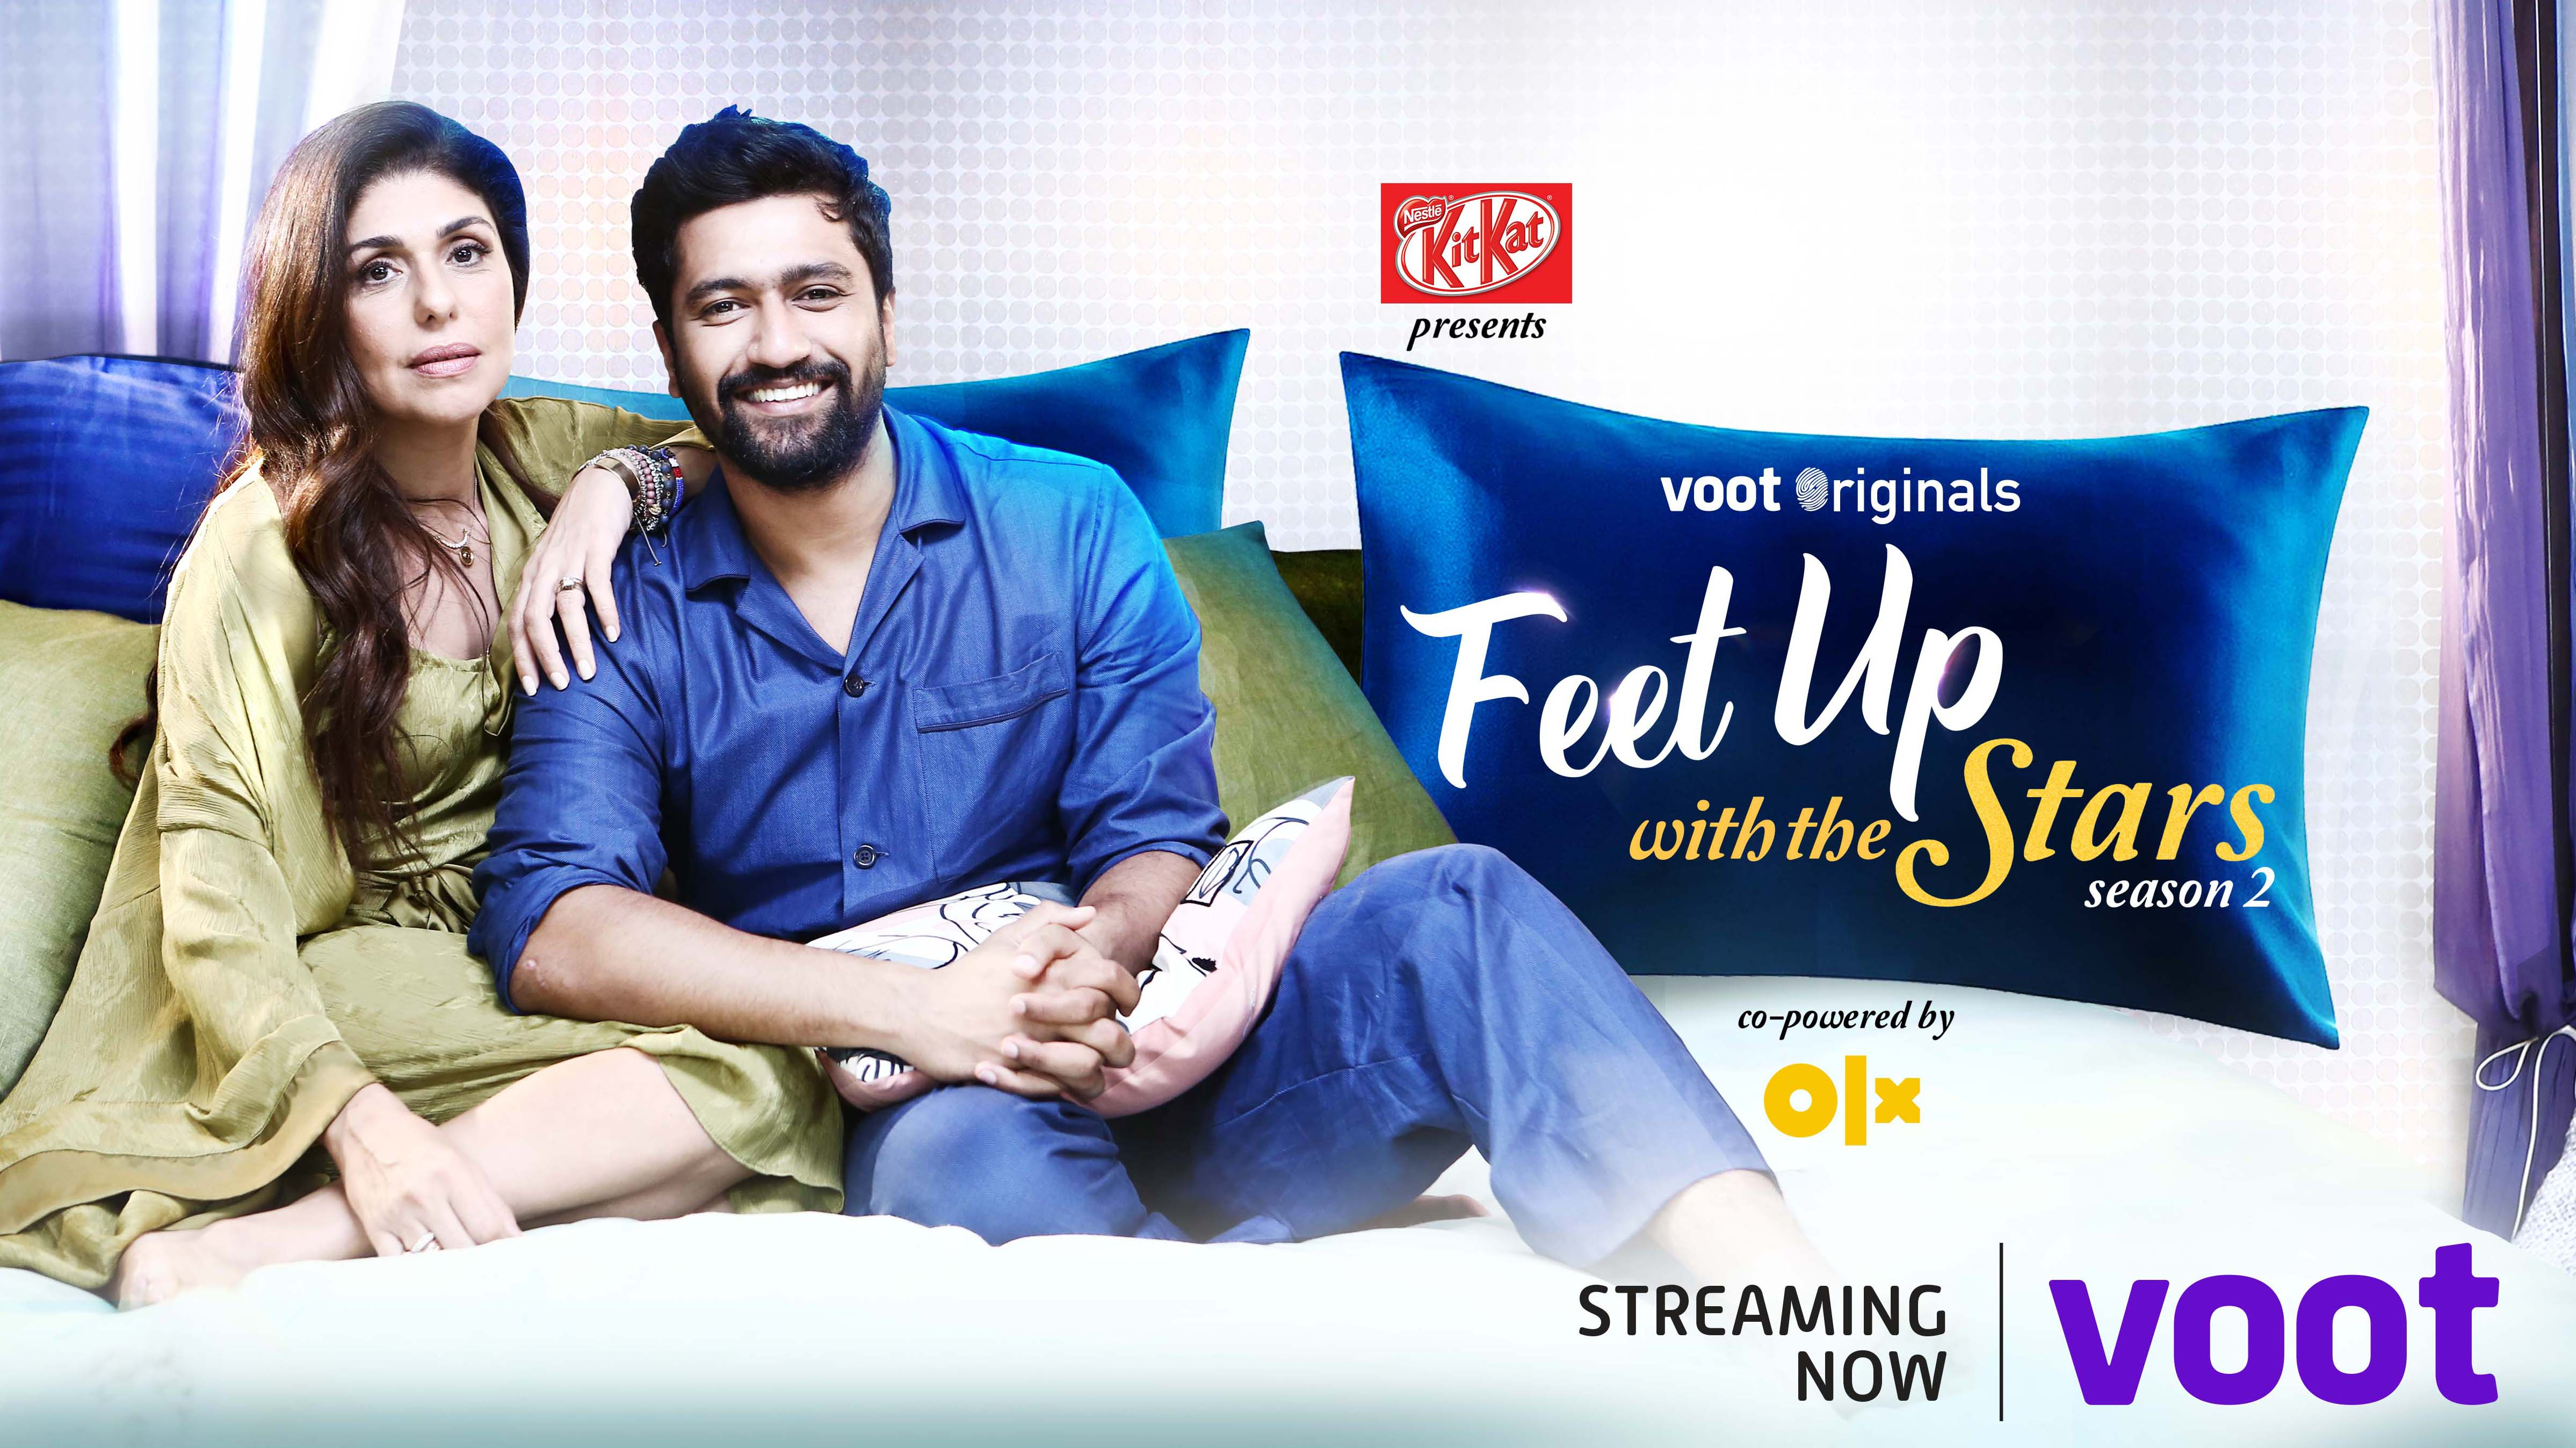 The new Desi app will include VOOT's hit show Feet Up with the Stars